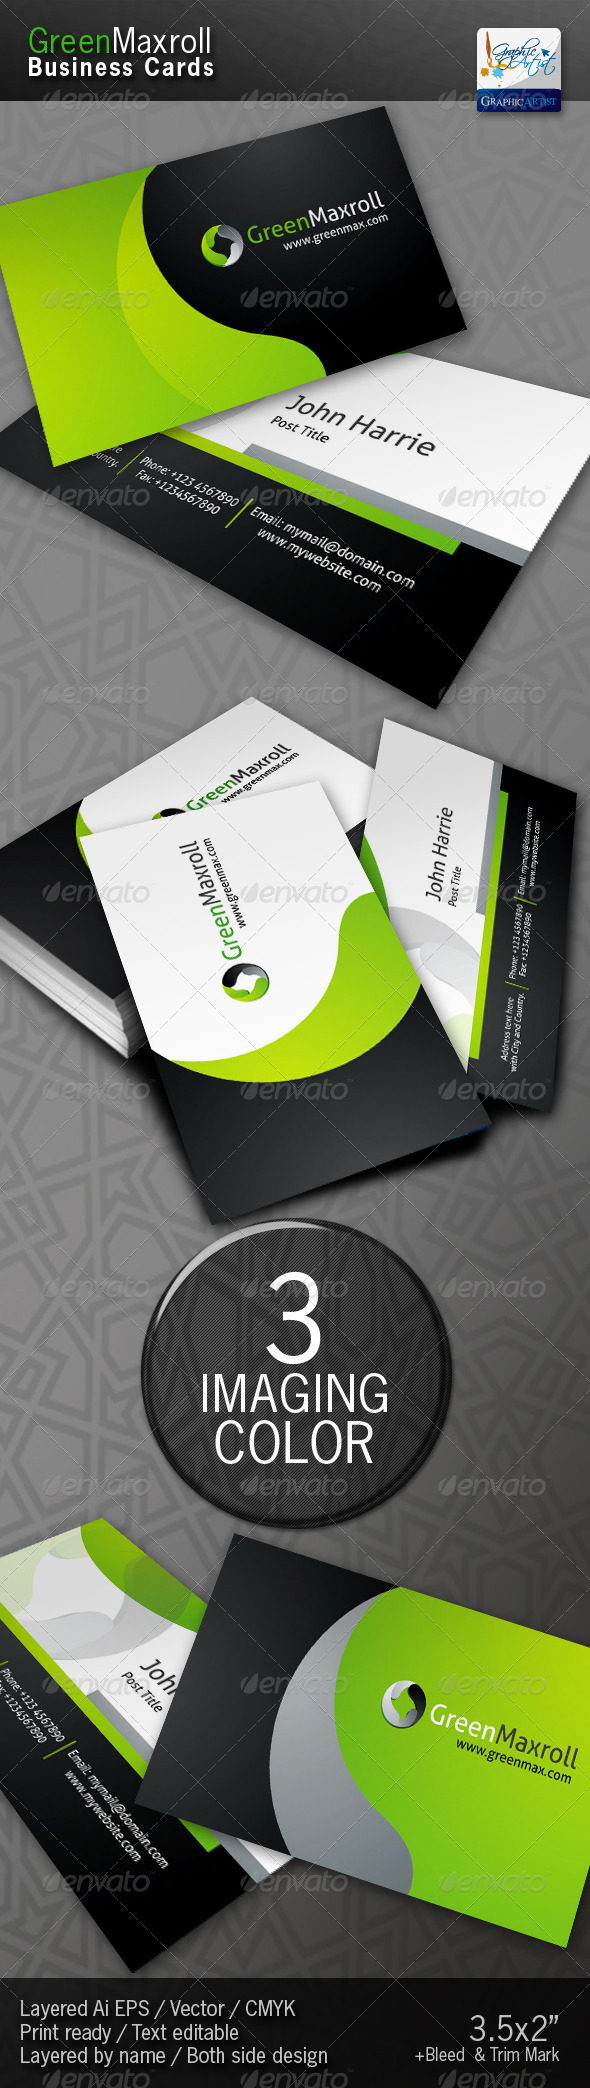 GraphicRiver GreenMaxroll Business Cards 1455817